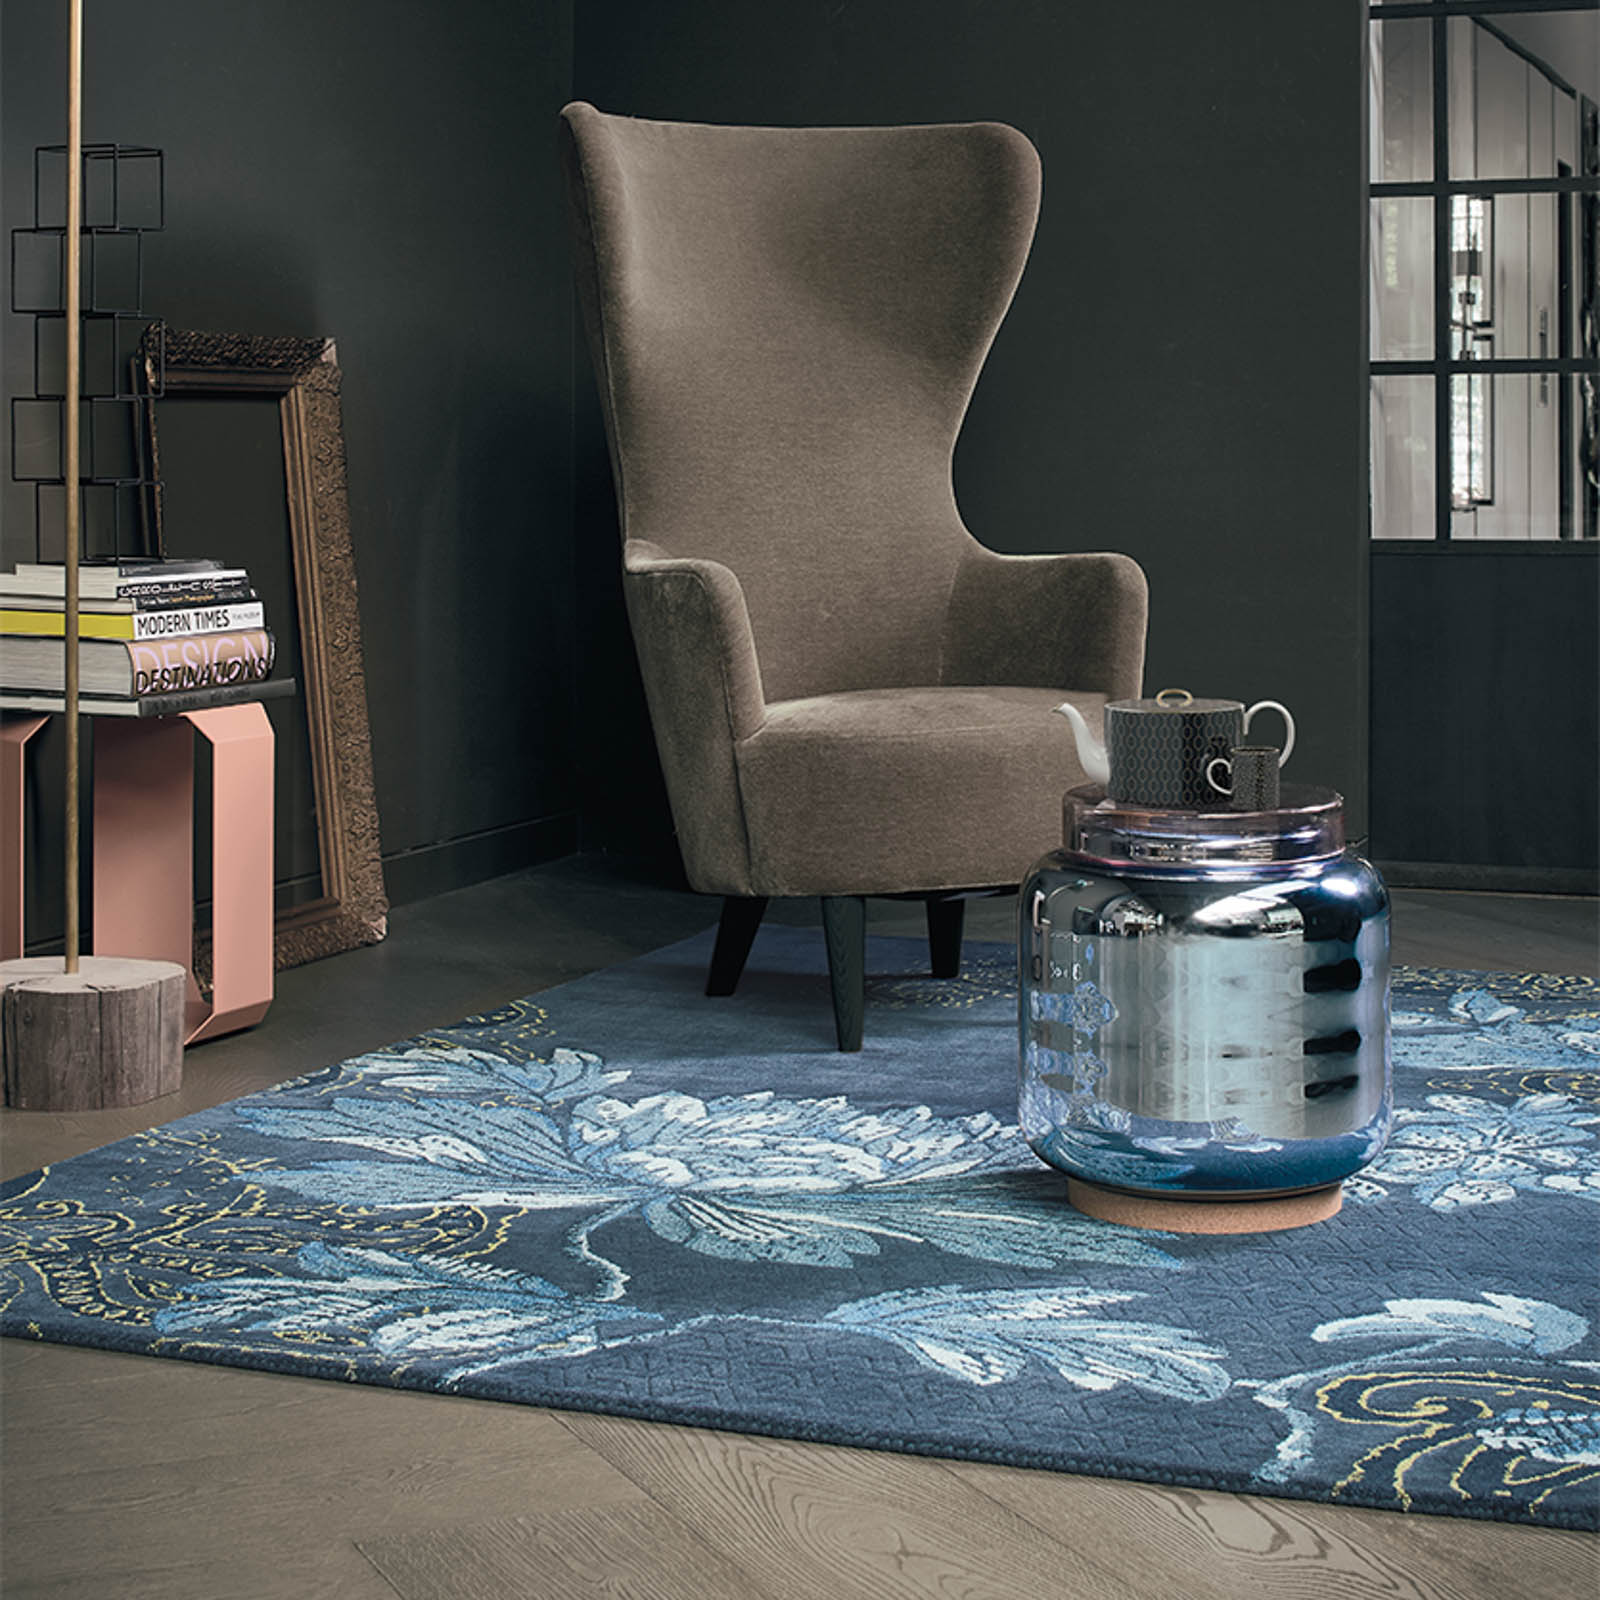 Mother's day gift, a floral rug inside a living roomMother's Day gift of a Fable Floral Rugs 37508 by Wedgwood